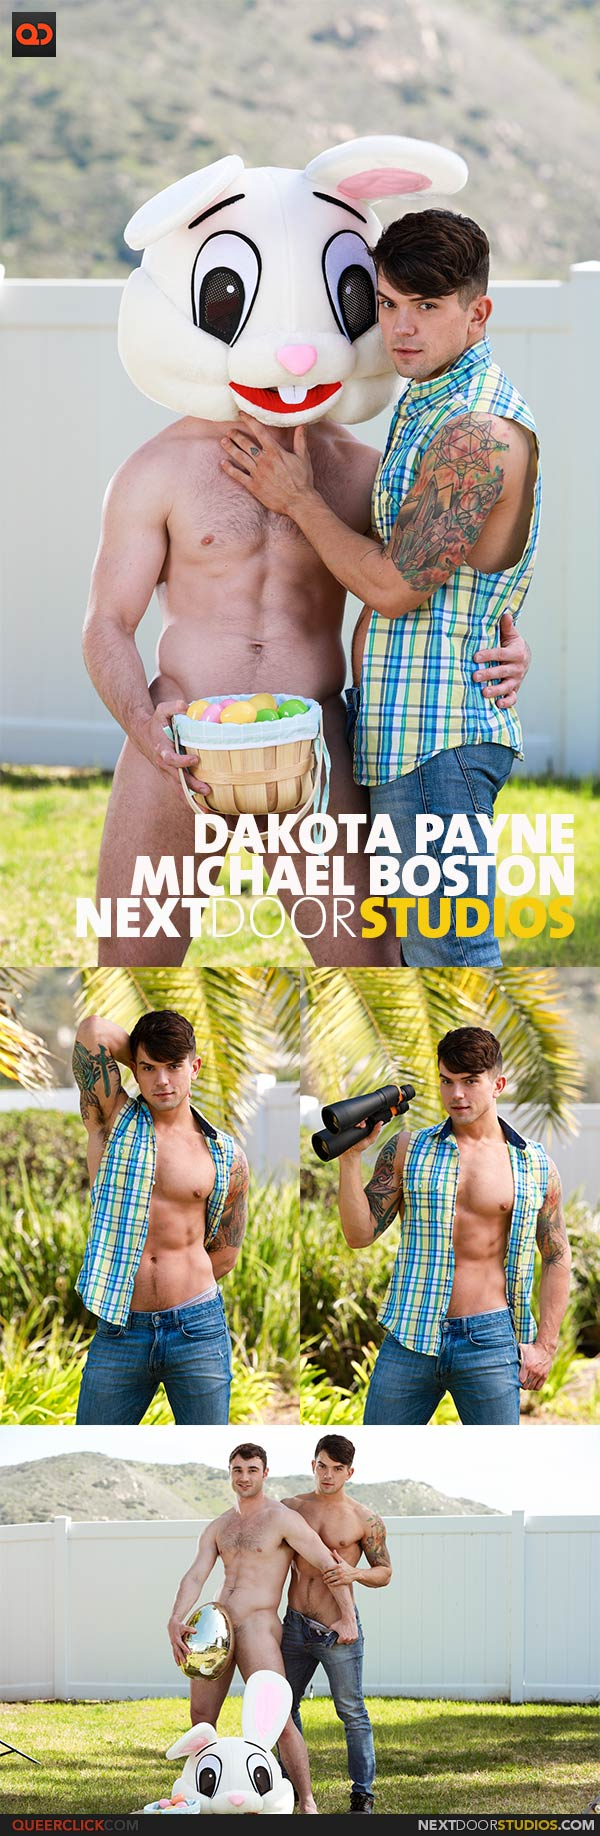 NextDoorStudios: Michael Boston and Dakota Payne